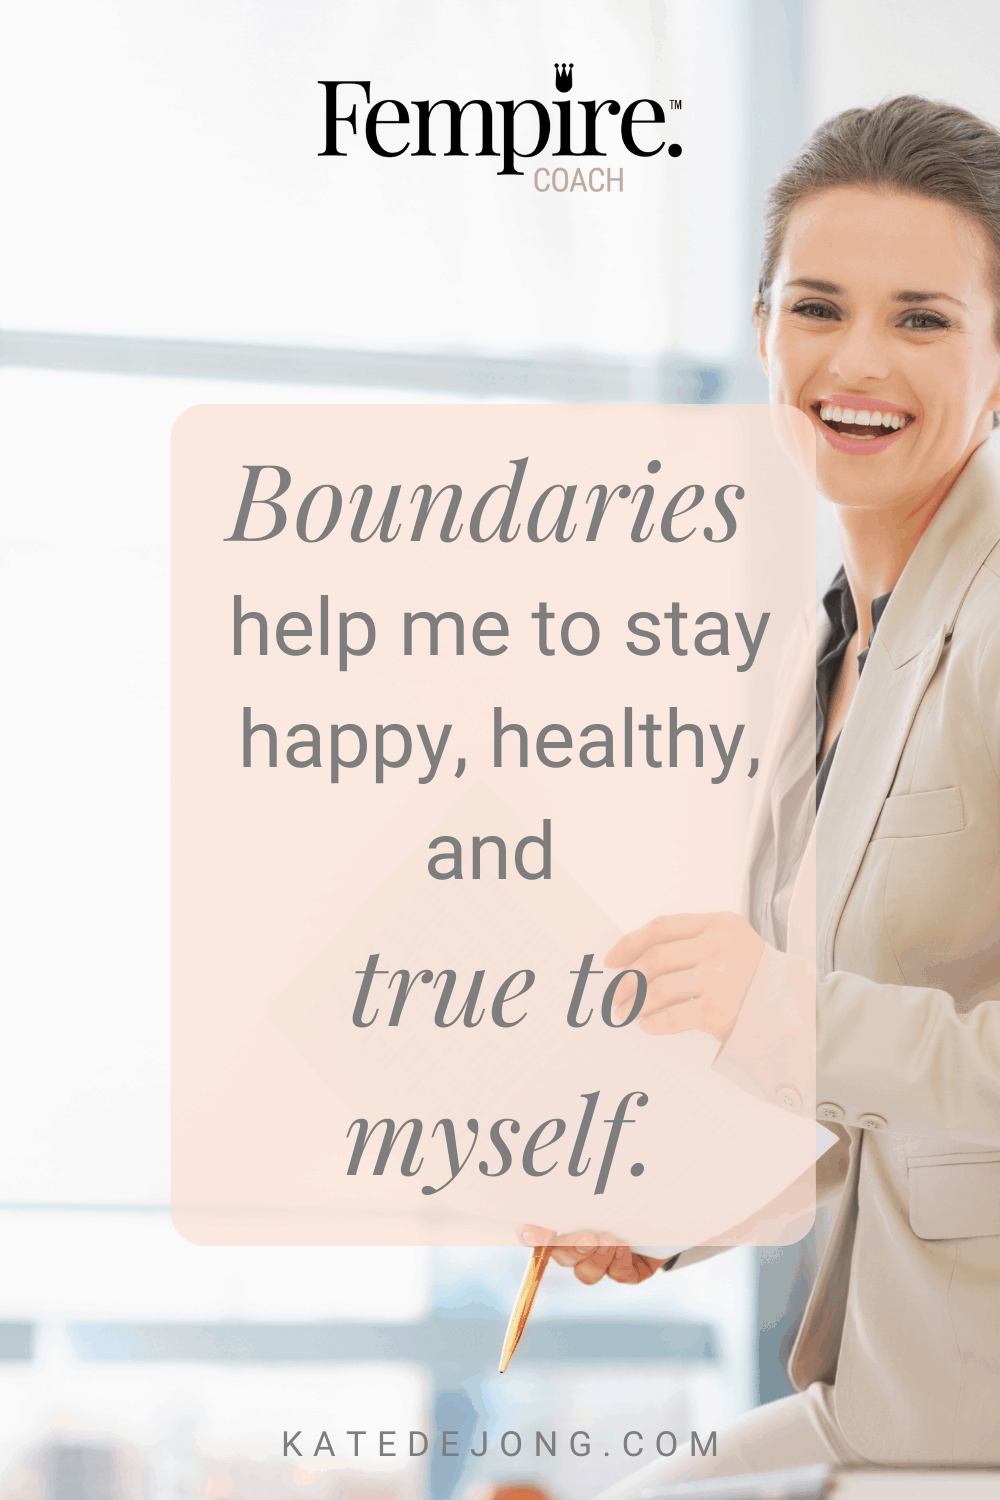 We all need healthy, strong boundaries in both our business and in our life to thrive. Discover how to identify when your boundaries have been crossed and what you can do to keep yourself balanced and grounded. #fempire #fempirecoach #strongboundaries #healthyboundaries #womensupportingwomen #boundaries #relationships #selfcare #selflove #personalgrowth